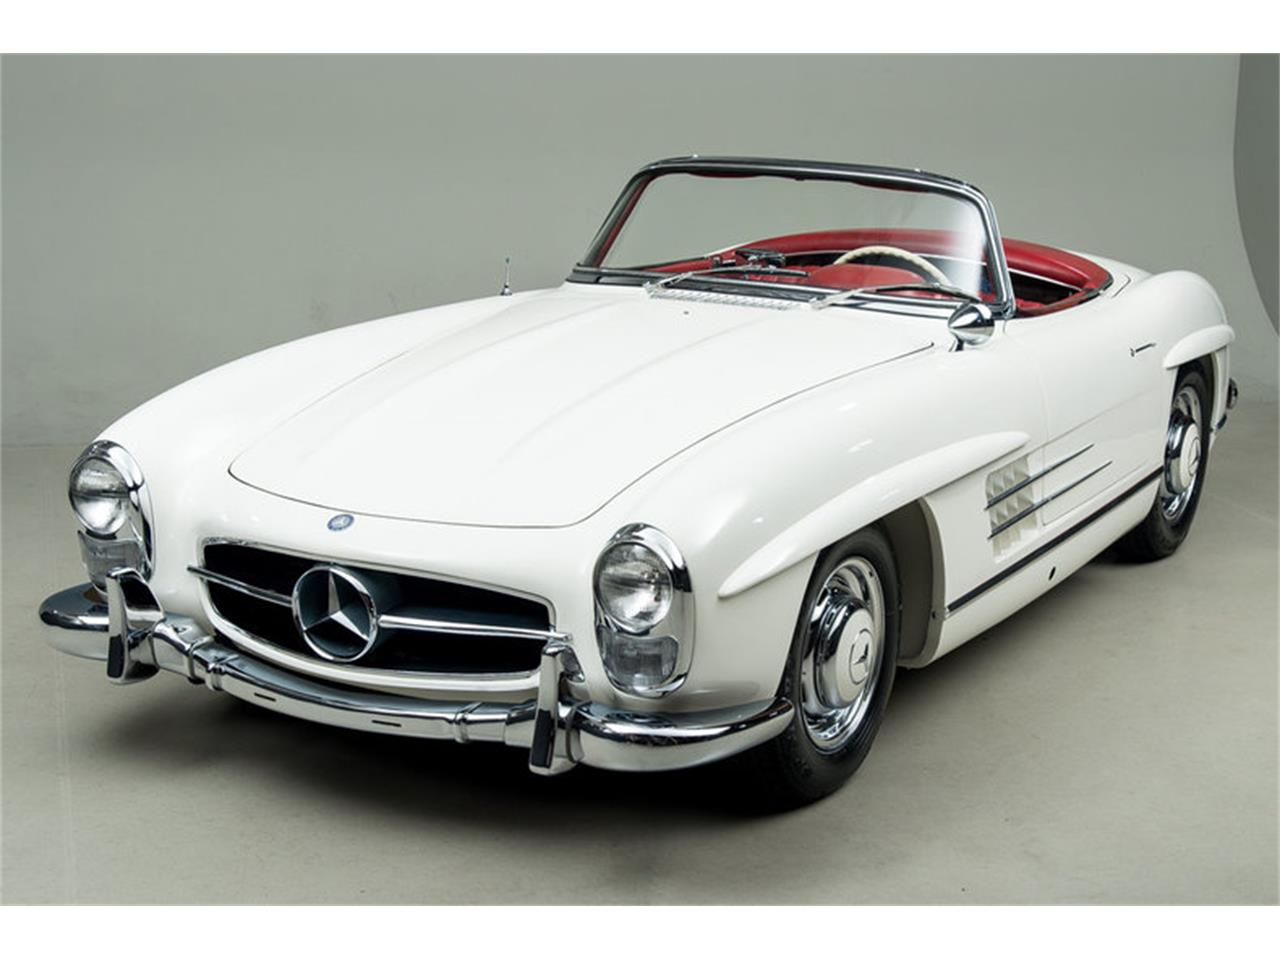 Large Picture of Classic 1963 Mercedes-Benz 300SL Roadster located in Scotts Valley California Auction Vehicle Offered by Canepa - EFPZ